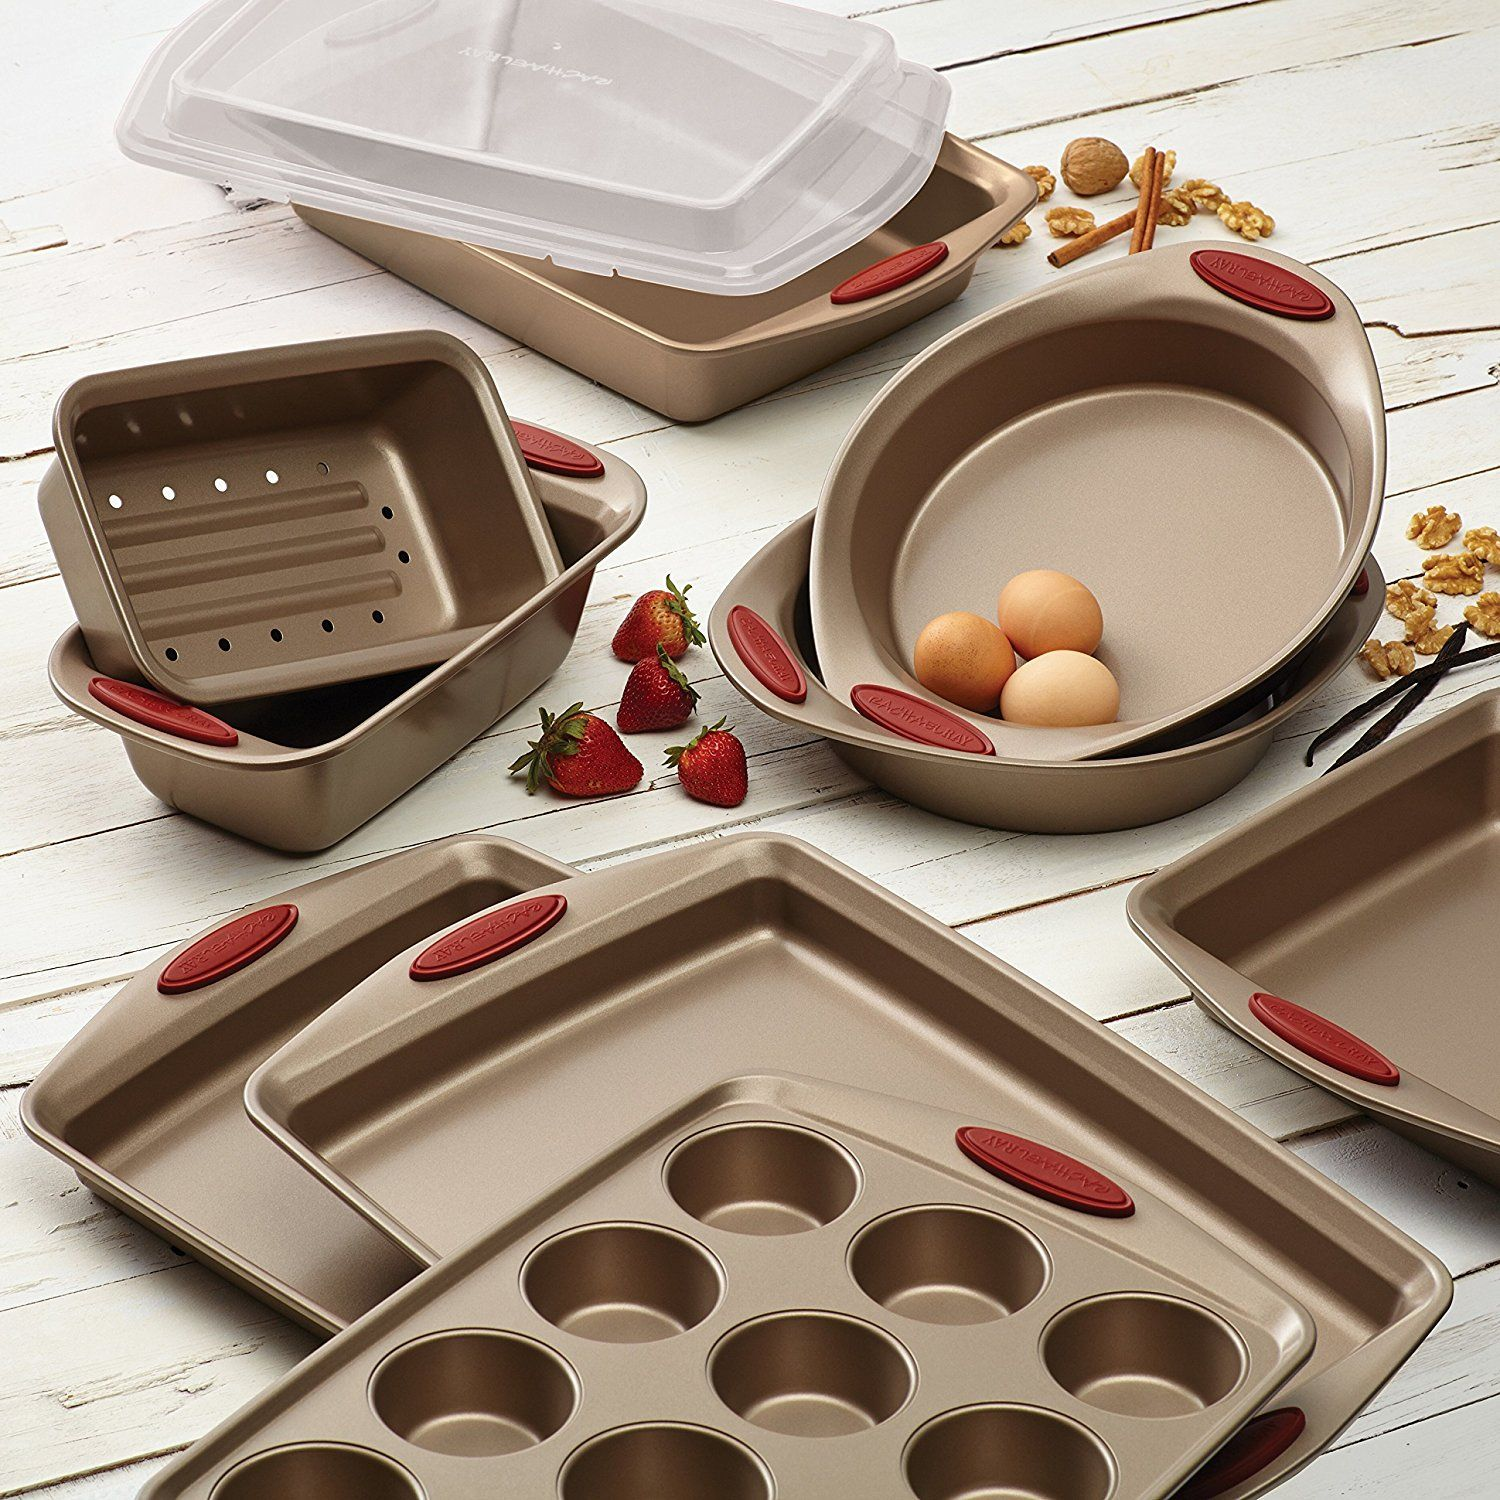 Rachael Ray 10-Piece Cucina nonstick bakeware set, Latte Brown with cranberry red handle. Featuring durable carbon steel construction with rolled-rim edges designed for easy, #everydayuse.